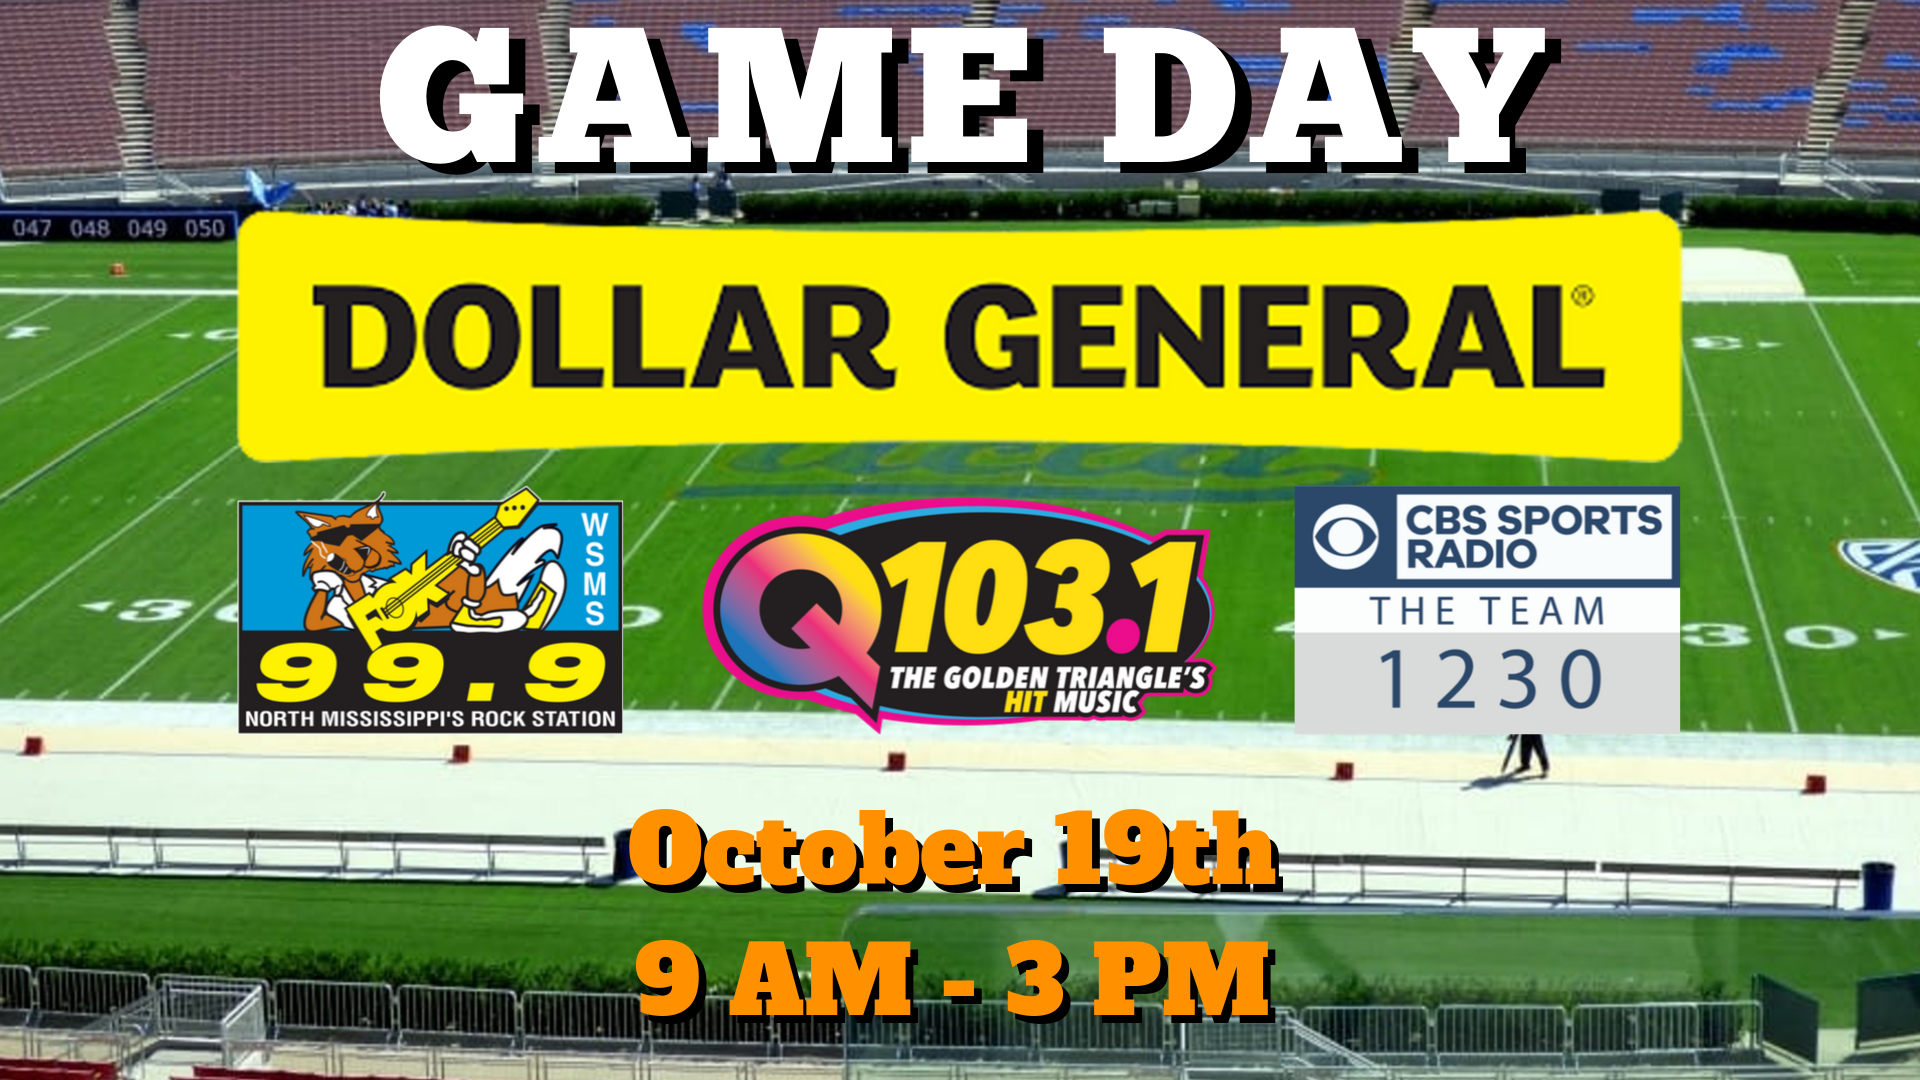 Game Day at Dollar General